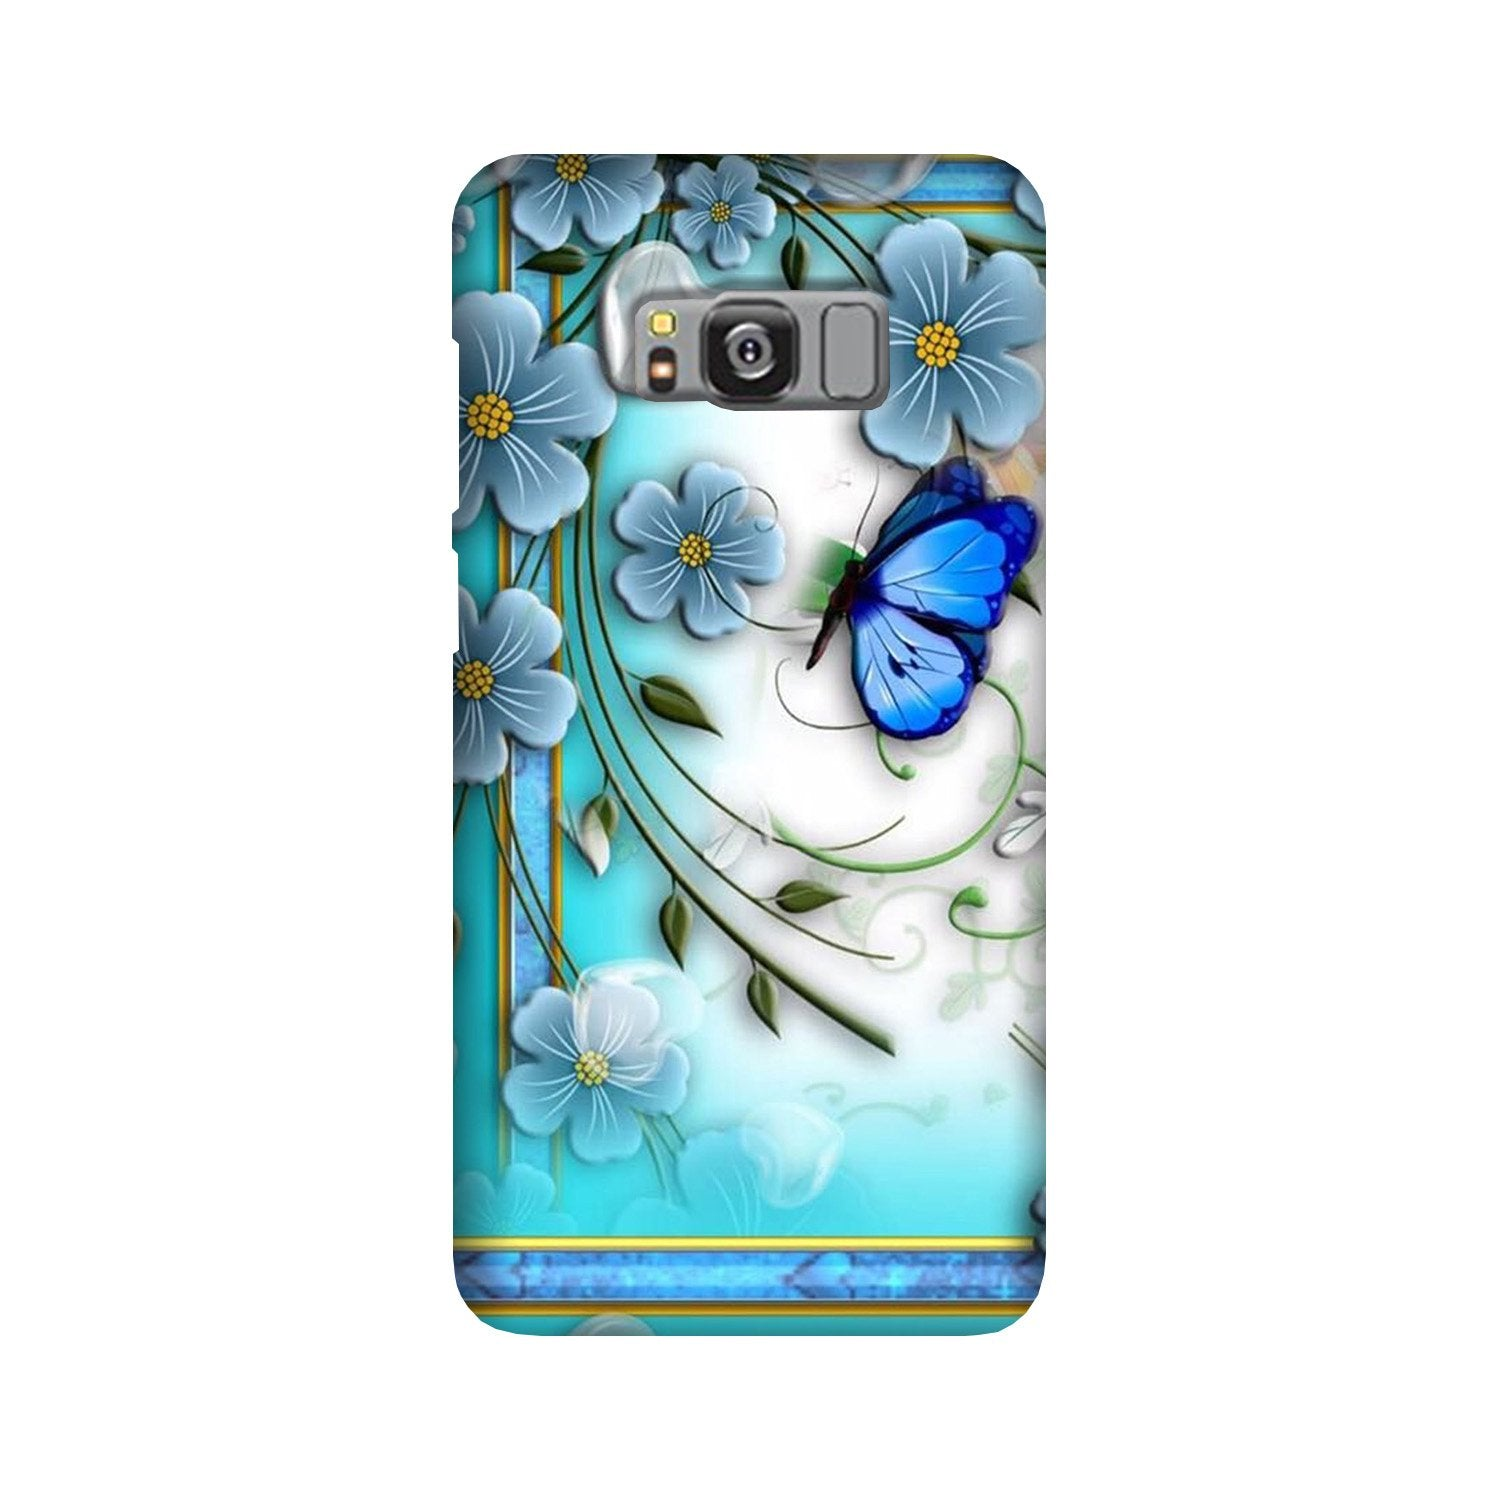 Blue Butterfly Case for Galaxy S8 Plus